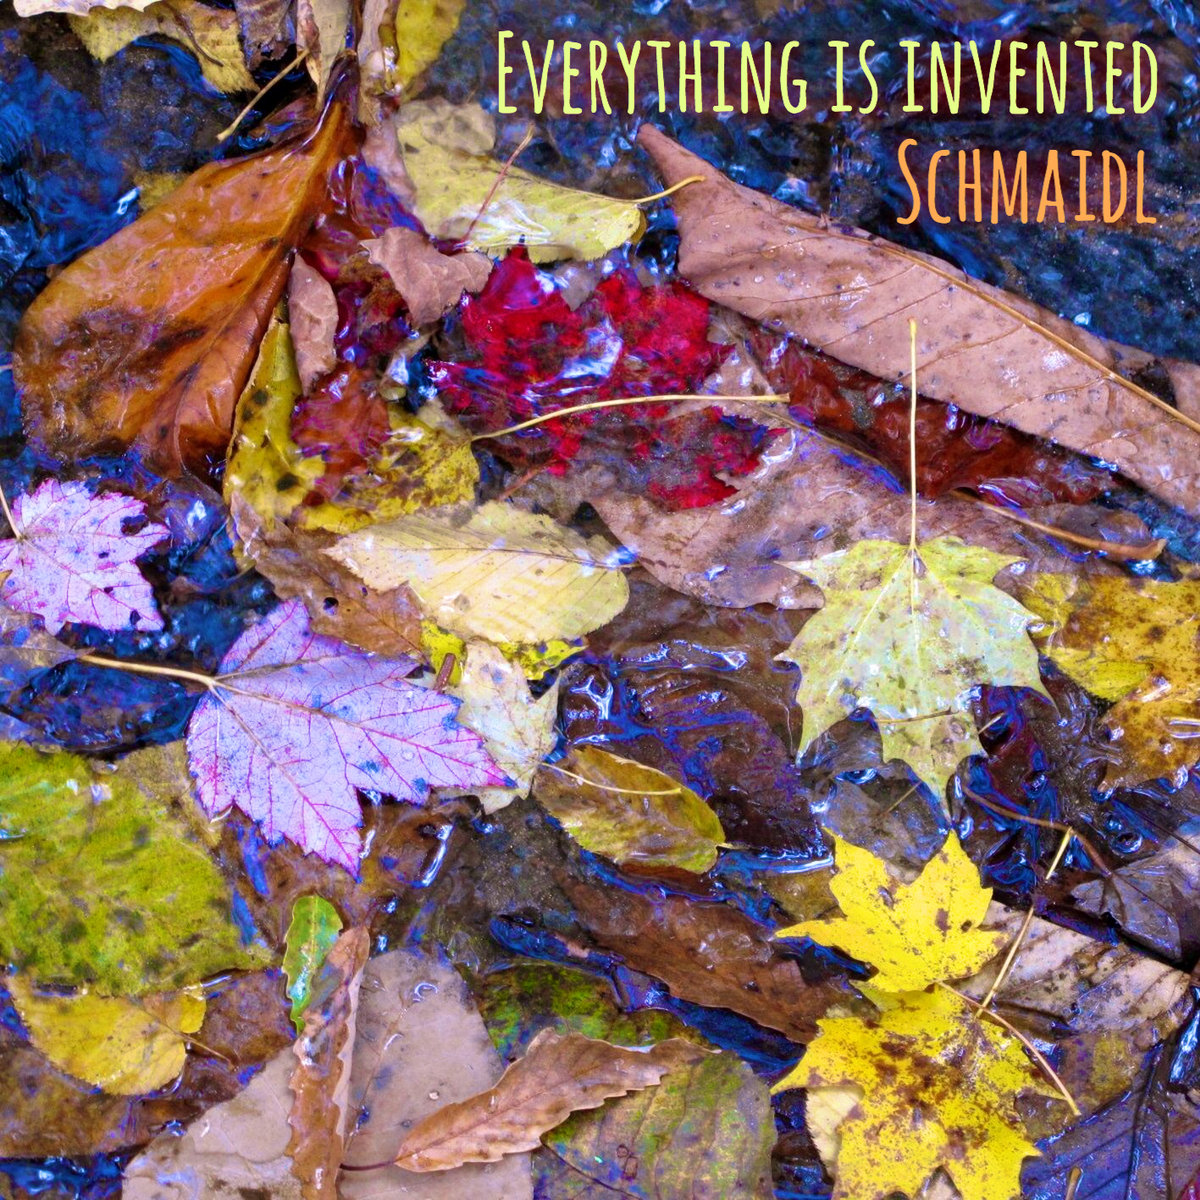 https://dhaturarecords.bandcamp.com/album/everything-is-invented